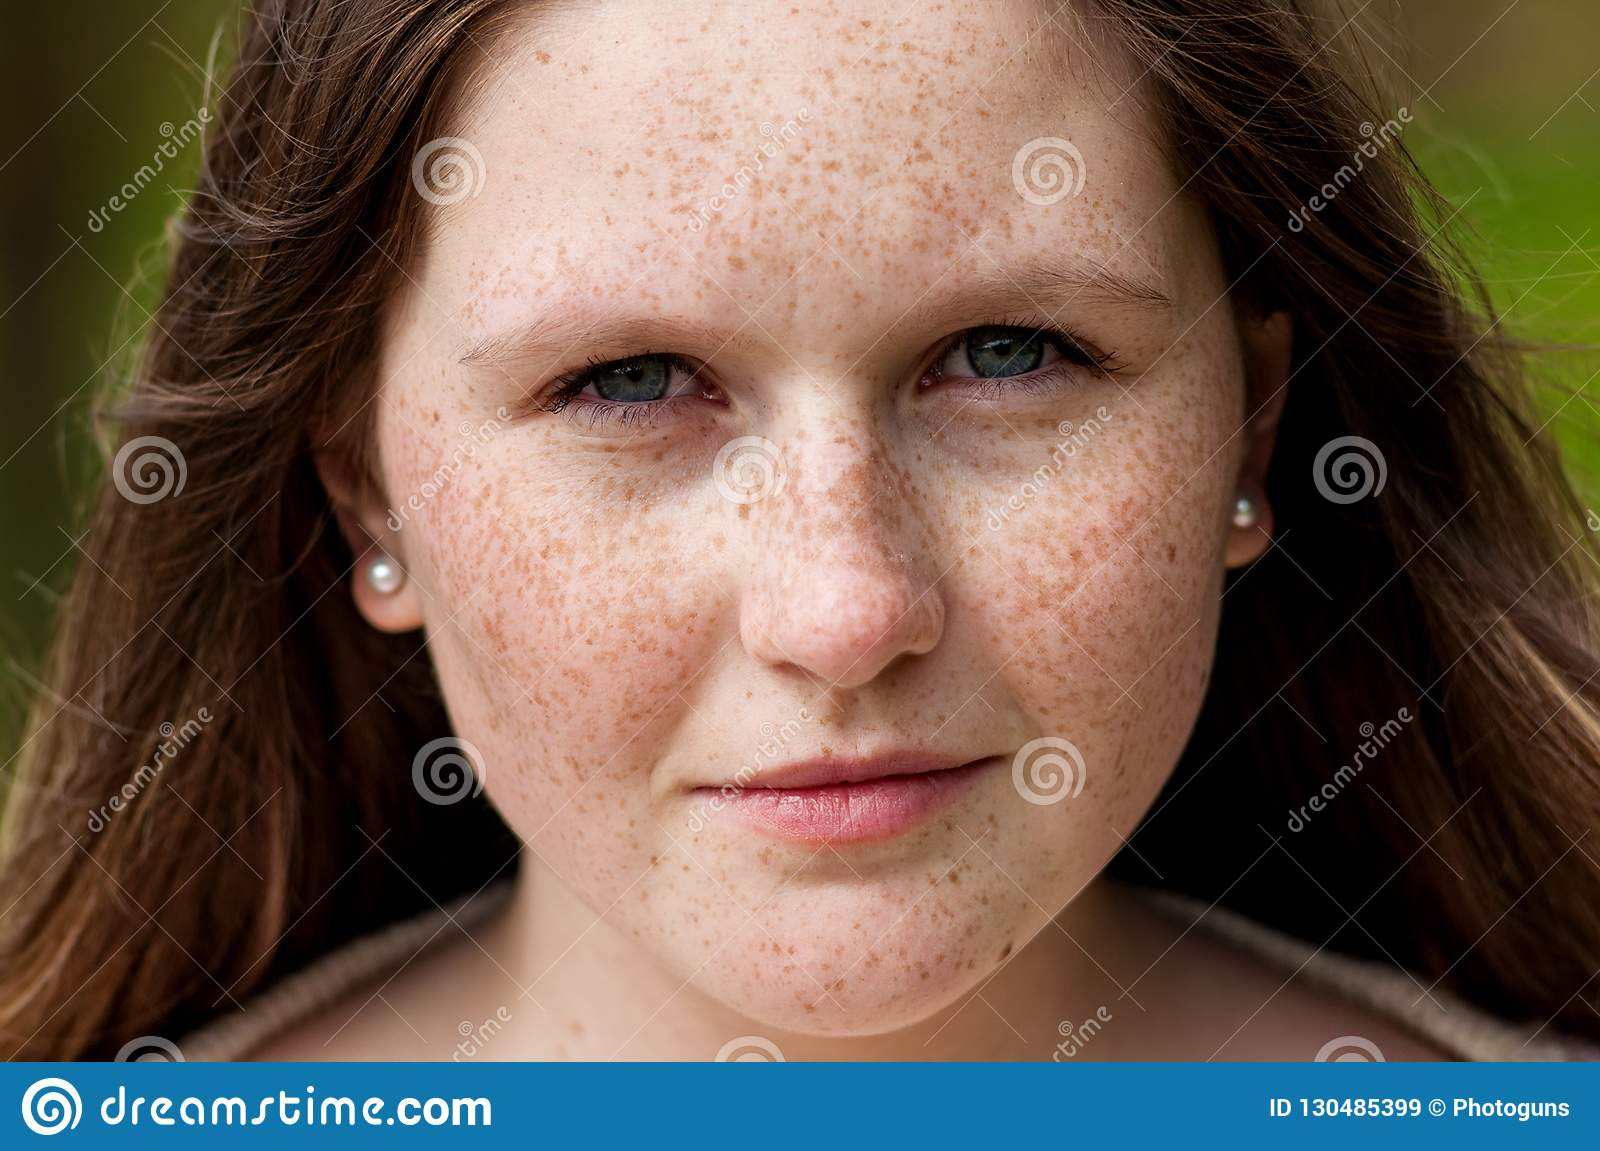 Theme, interesting beautiful redhead girls with freckles are absolutely